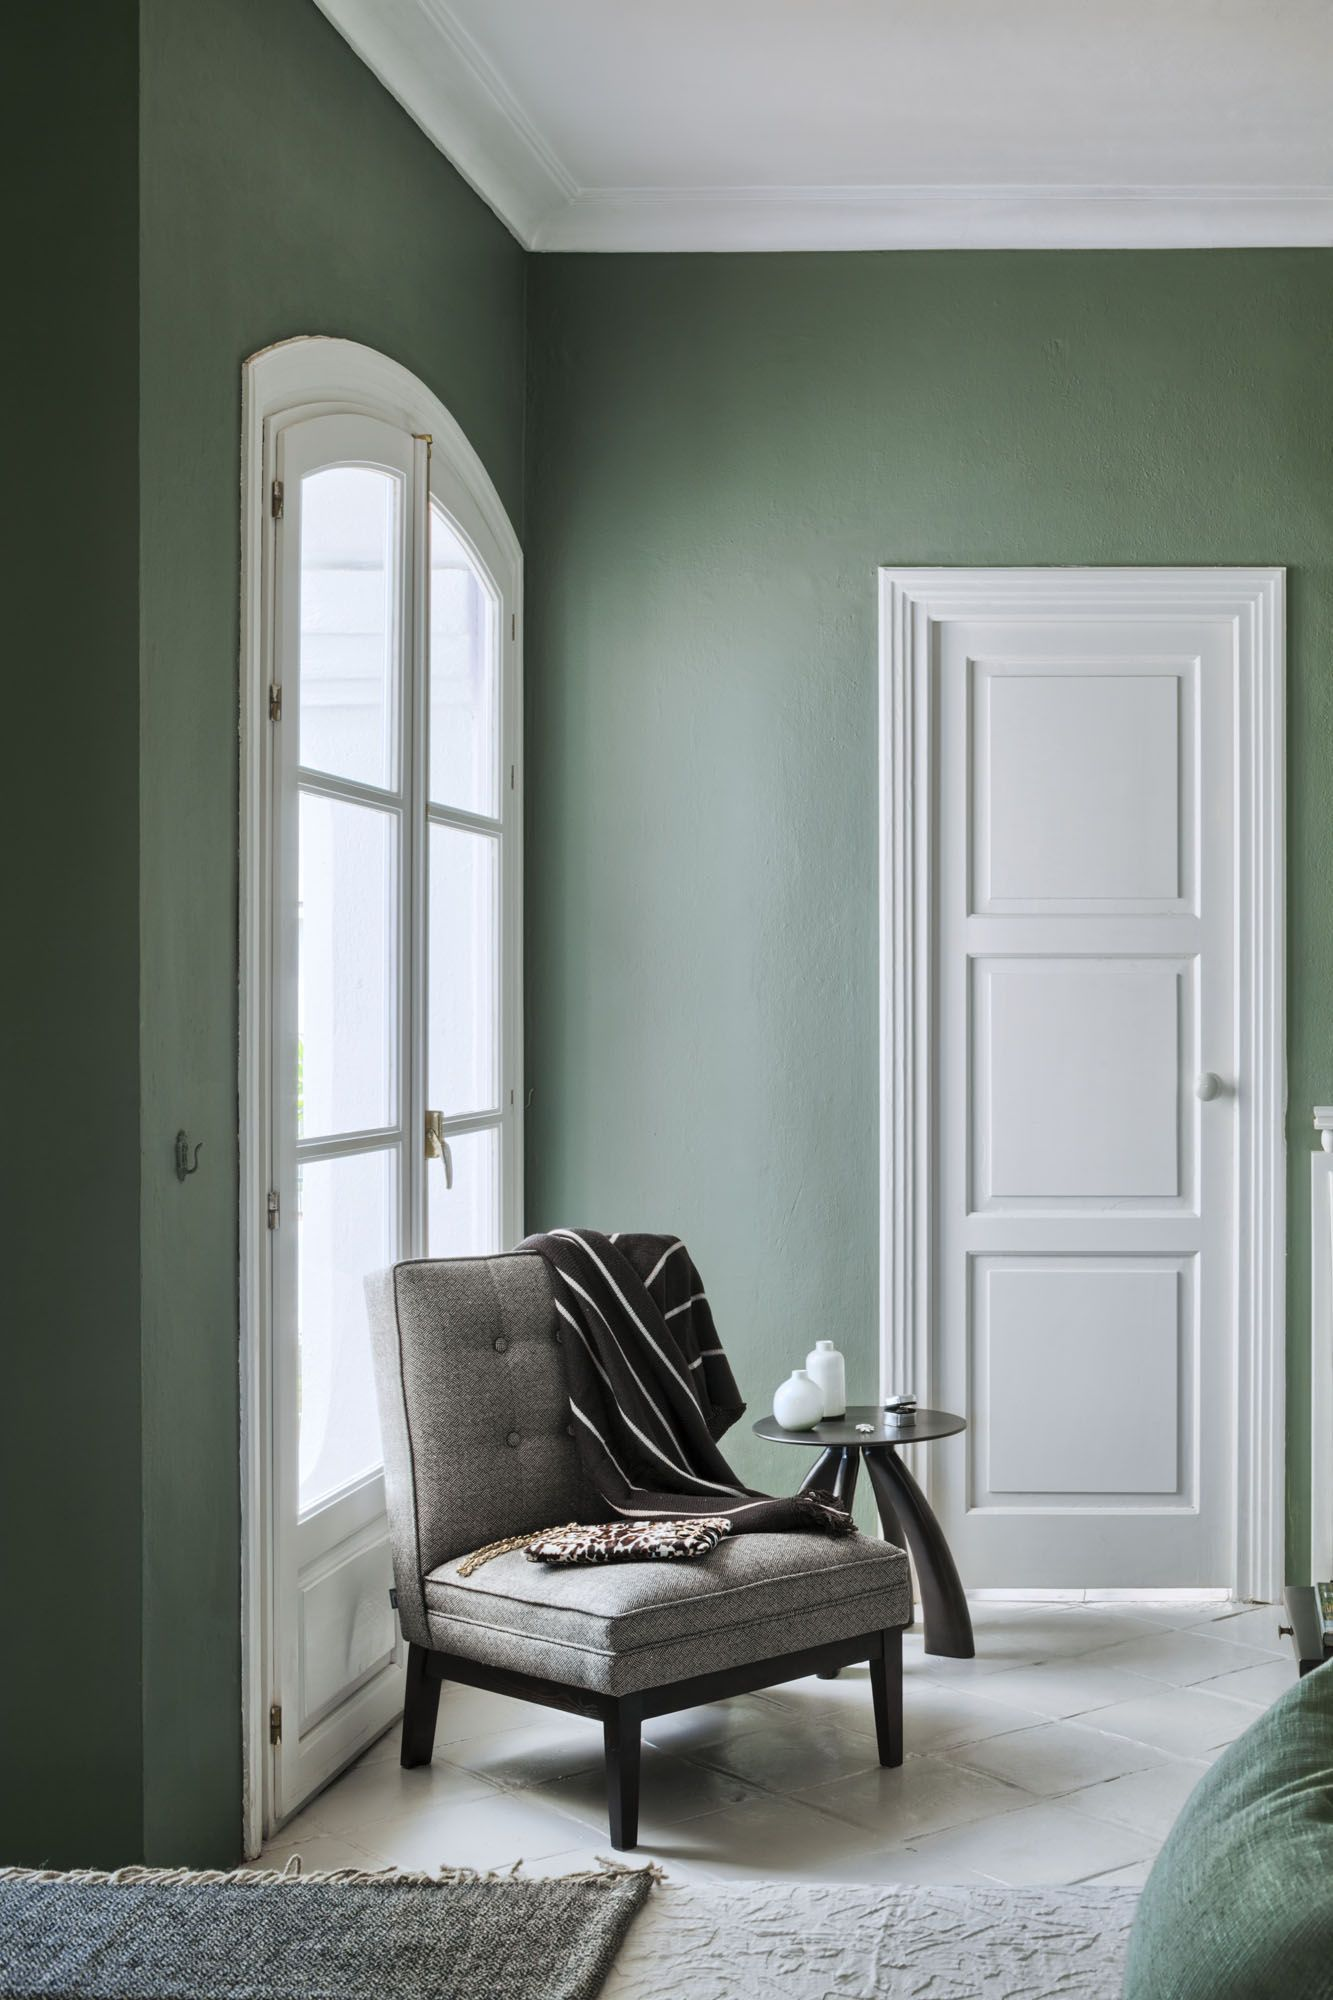 Green Paint Colours For Living Rooms Room Decorating With Brown Sofa Color Trends 2016 The Home A Colorful Life Farrow And Ball Smoke Den Weathered Shade Of Smoky Channels Traditional Aesthetic English Countryside